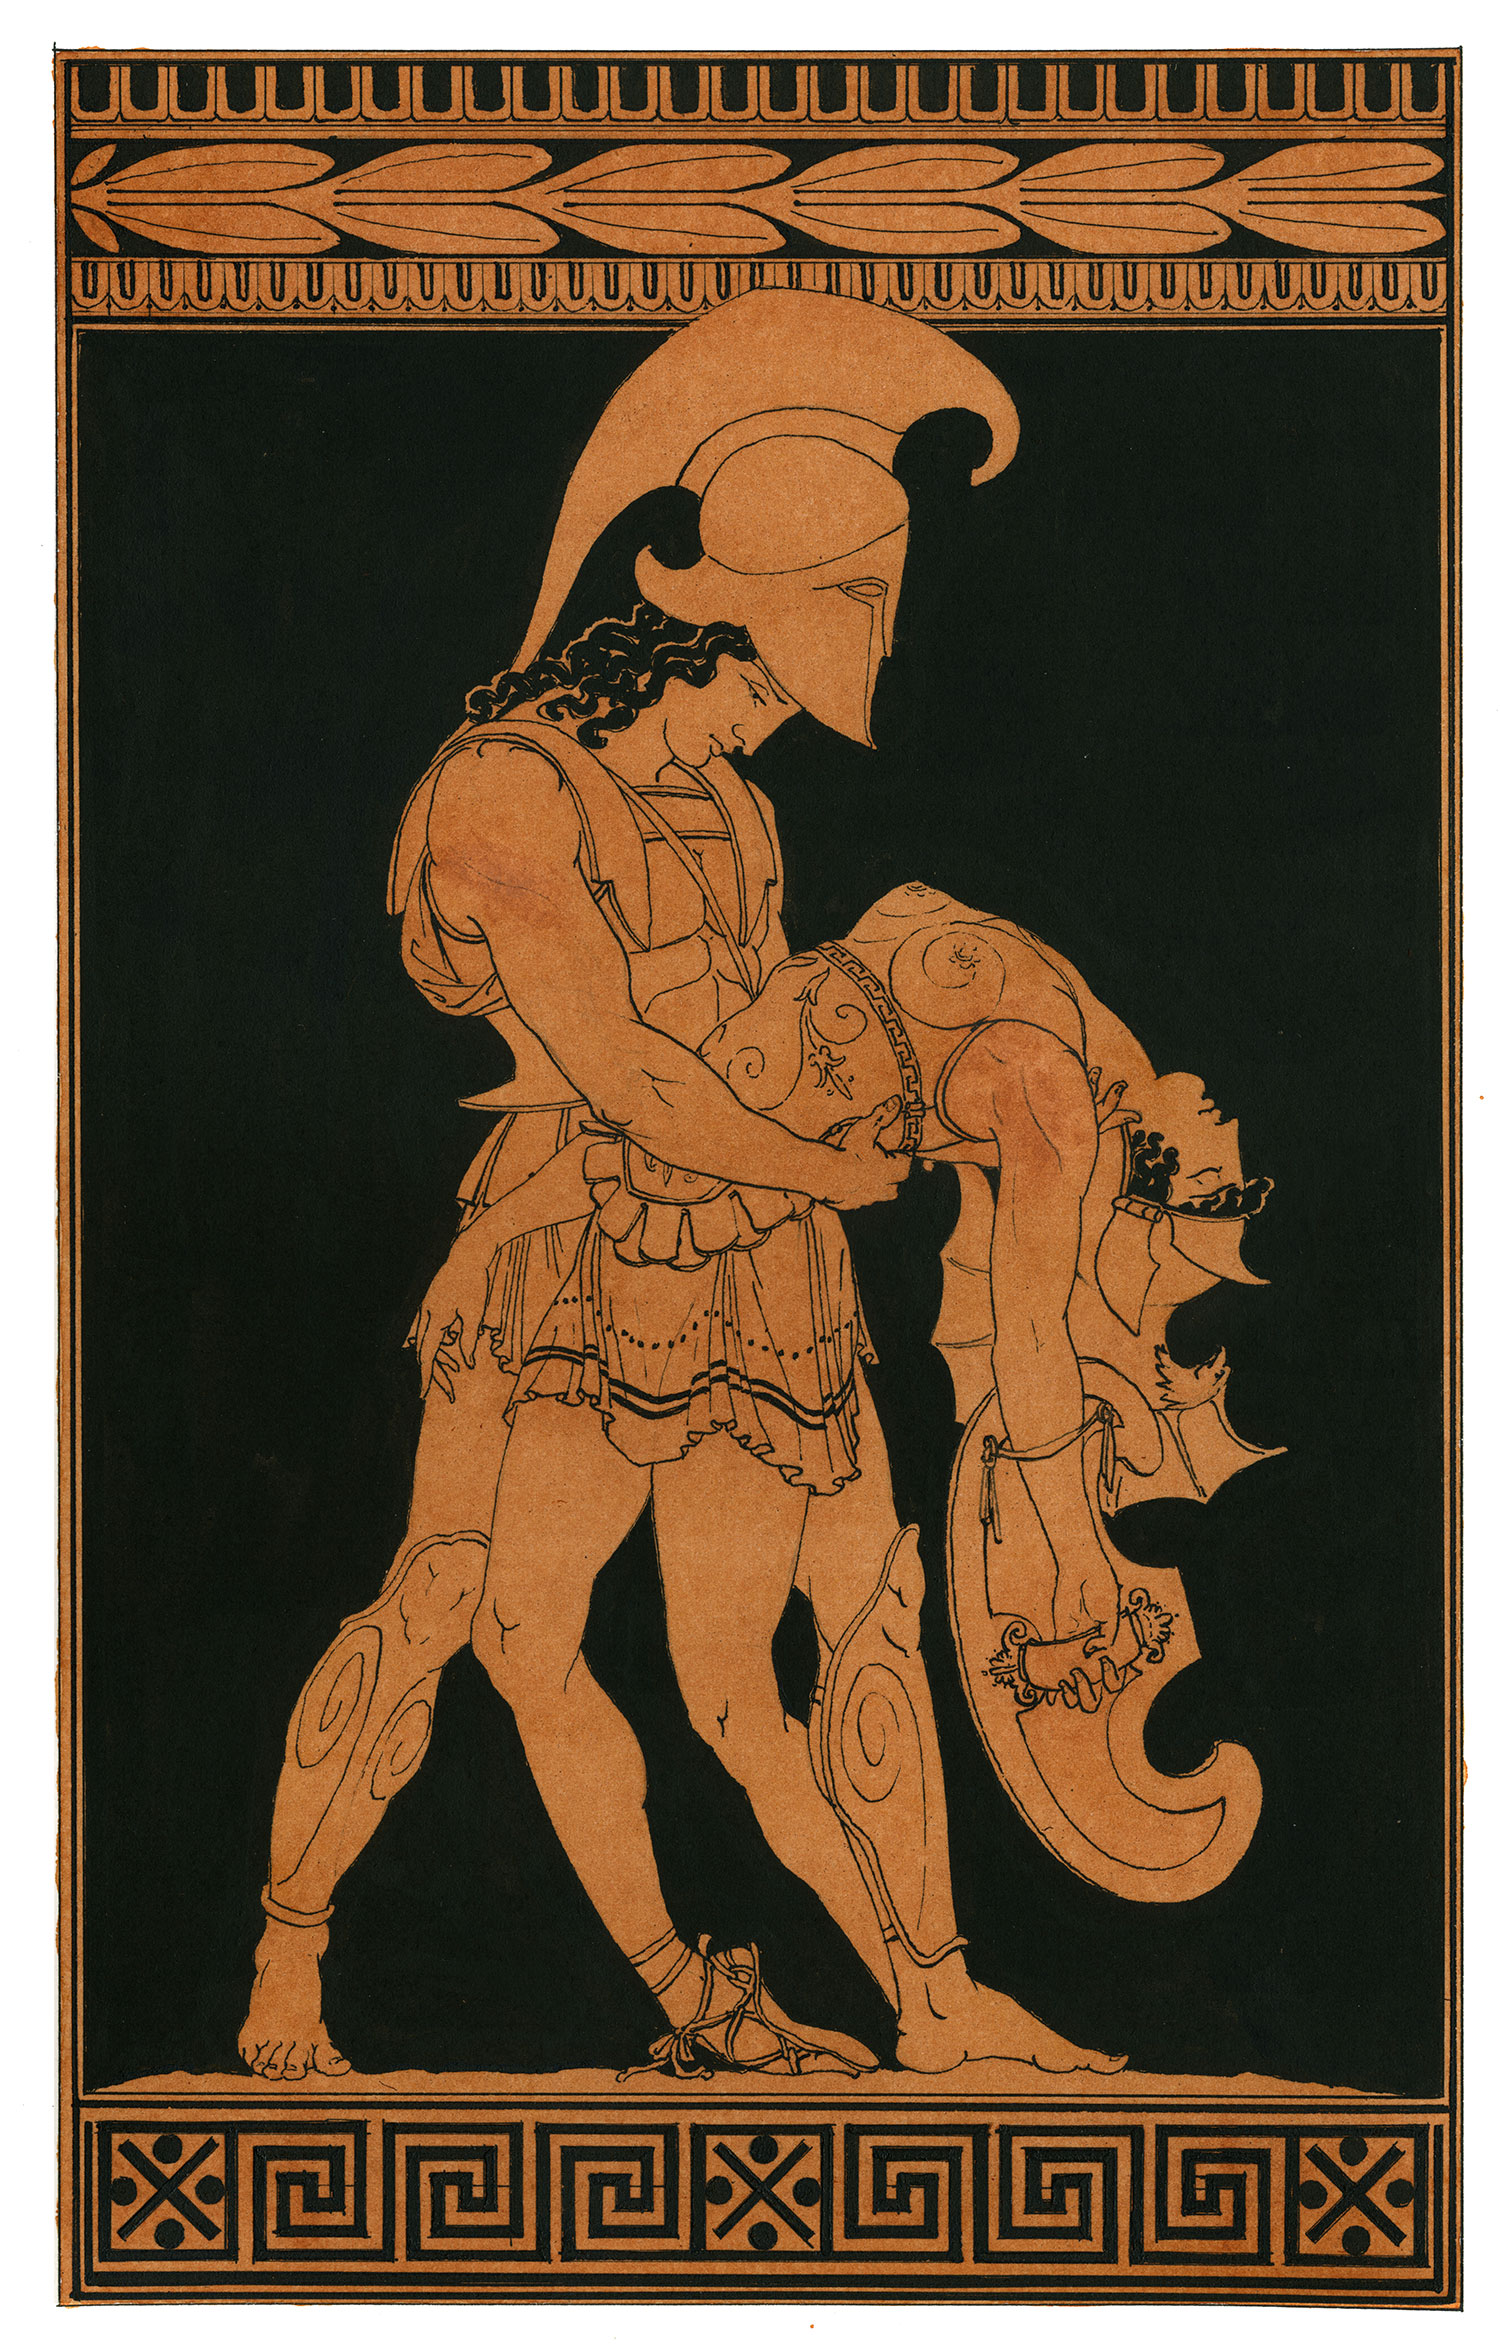 """Achilles and Pentheselia  2014, Ink and wash on paper, 14"""" x 10 1/4"""" © Leonard Porter MMXIV"""